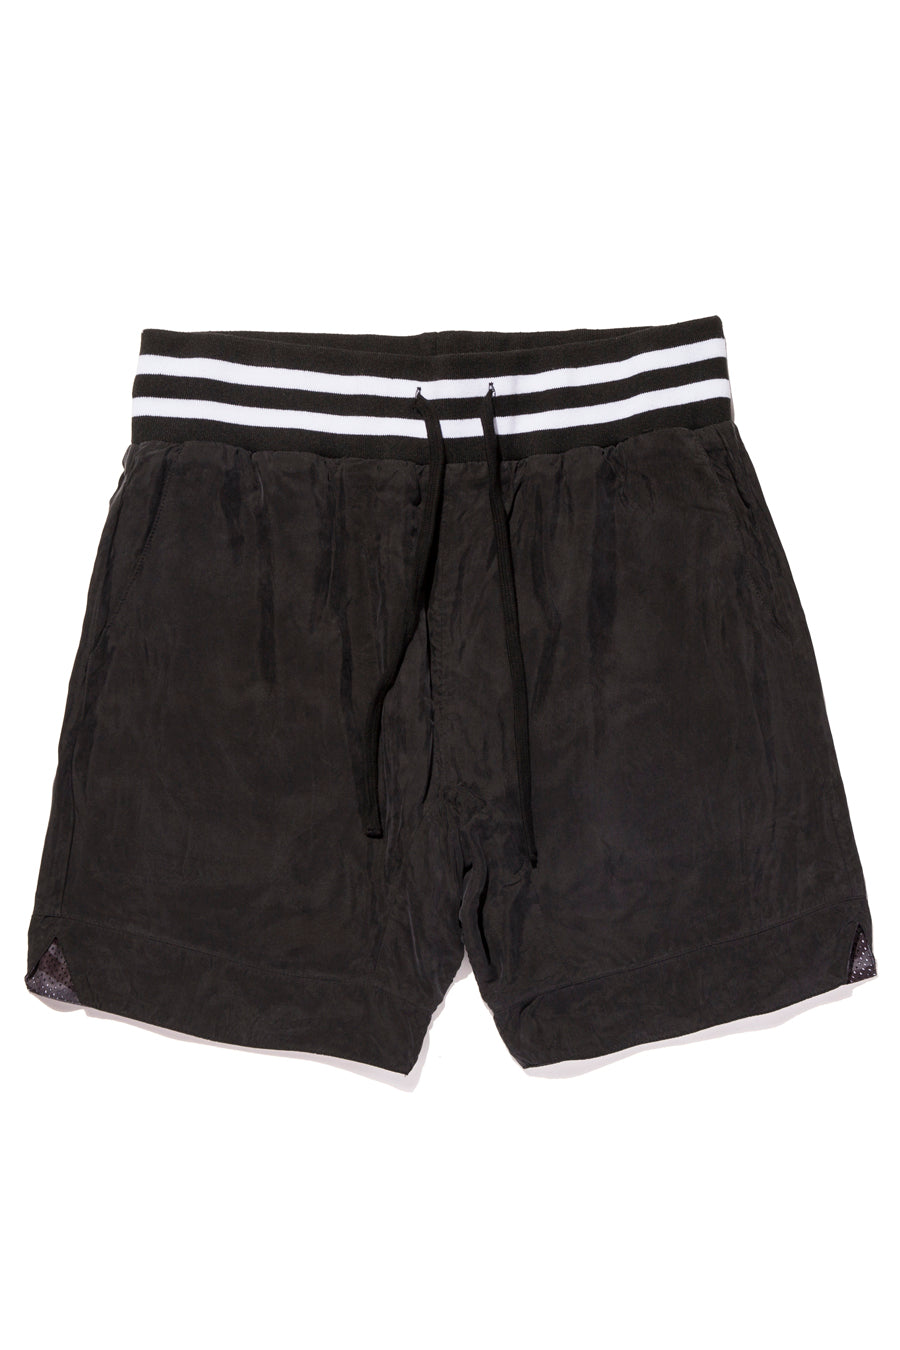 candorofficial - STADIUM REVERSIBLE SHORT - Bottoms